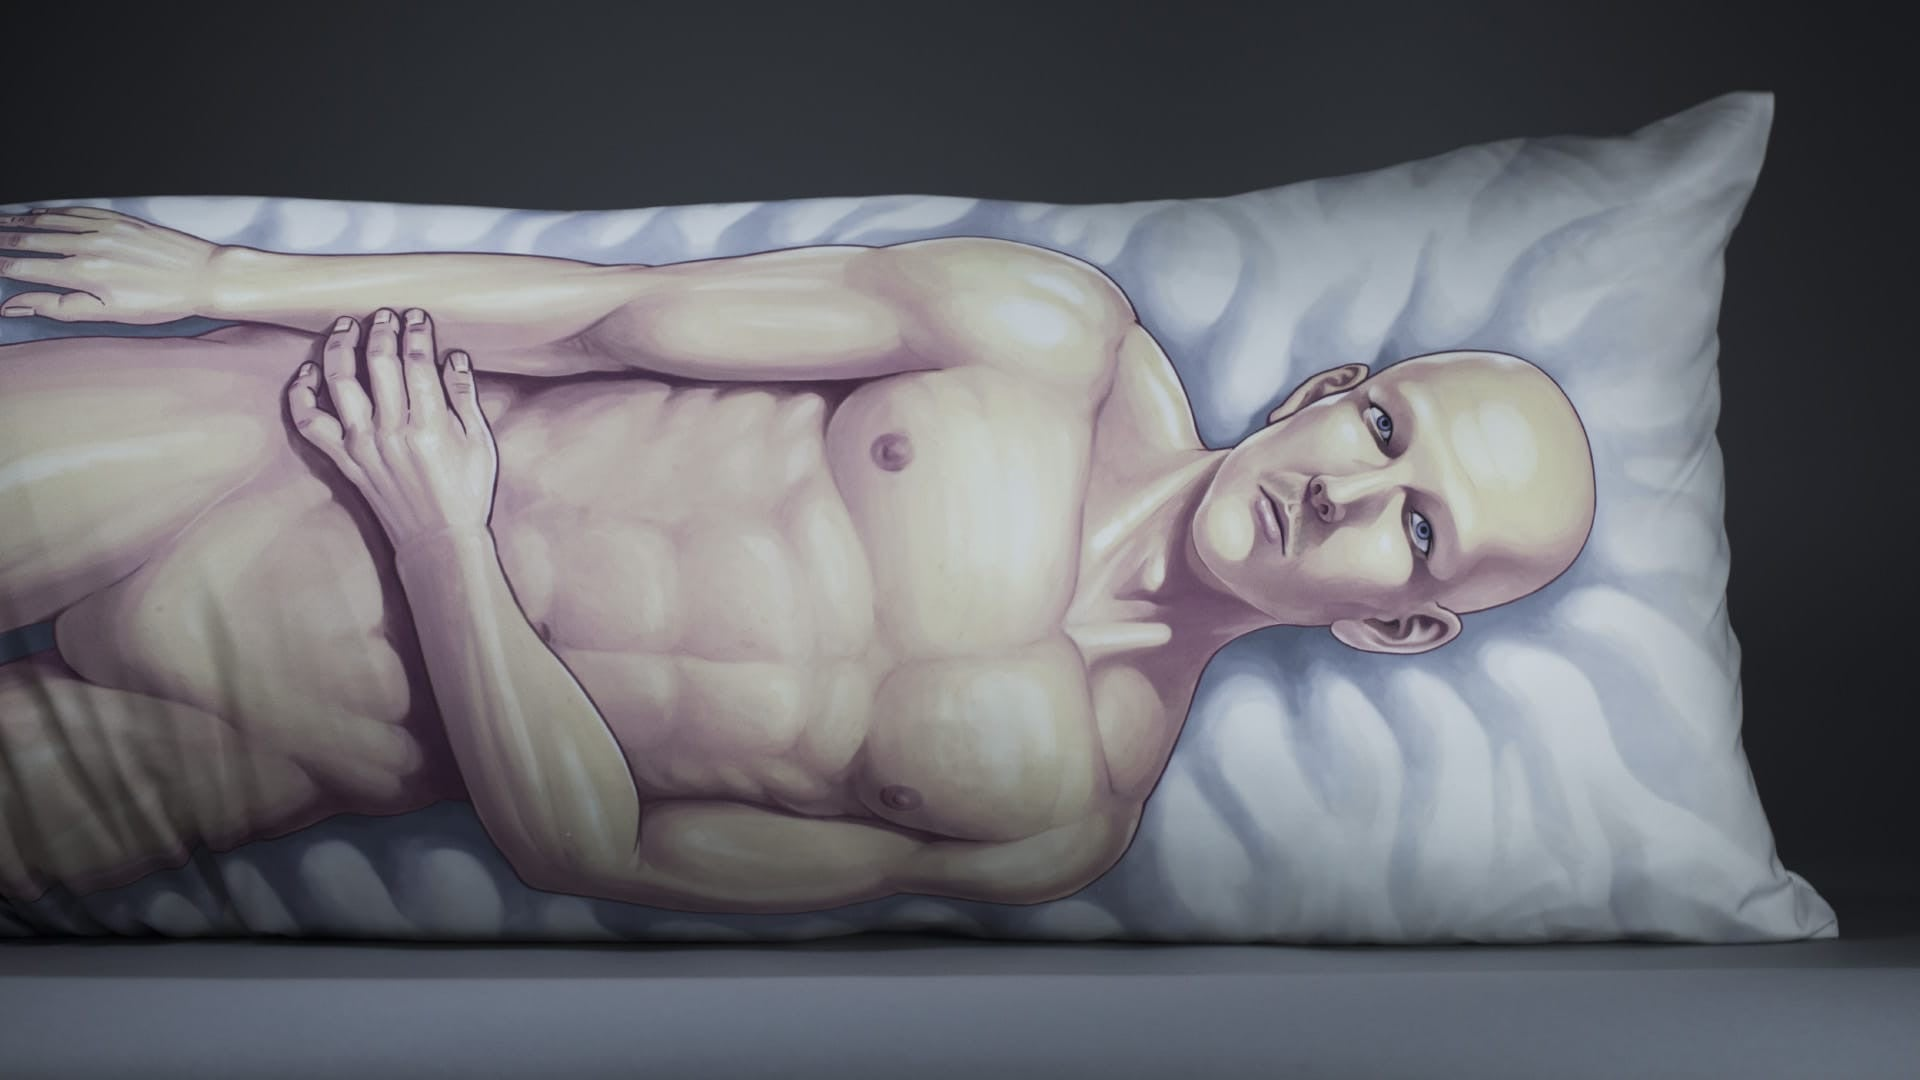 Deluxe Dakimakura Body Pillow (Inner Pillow Included)